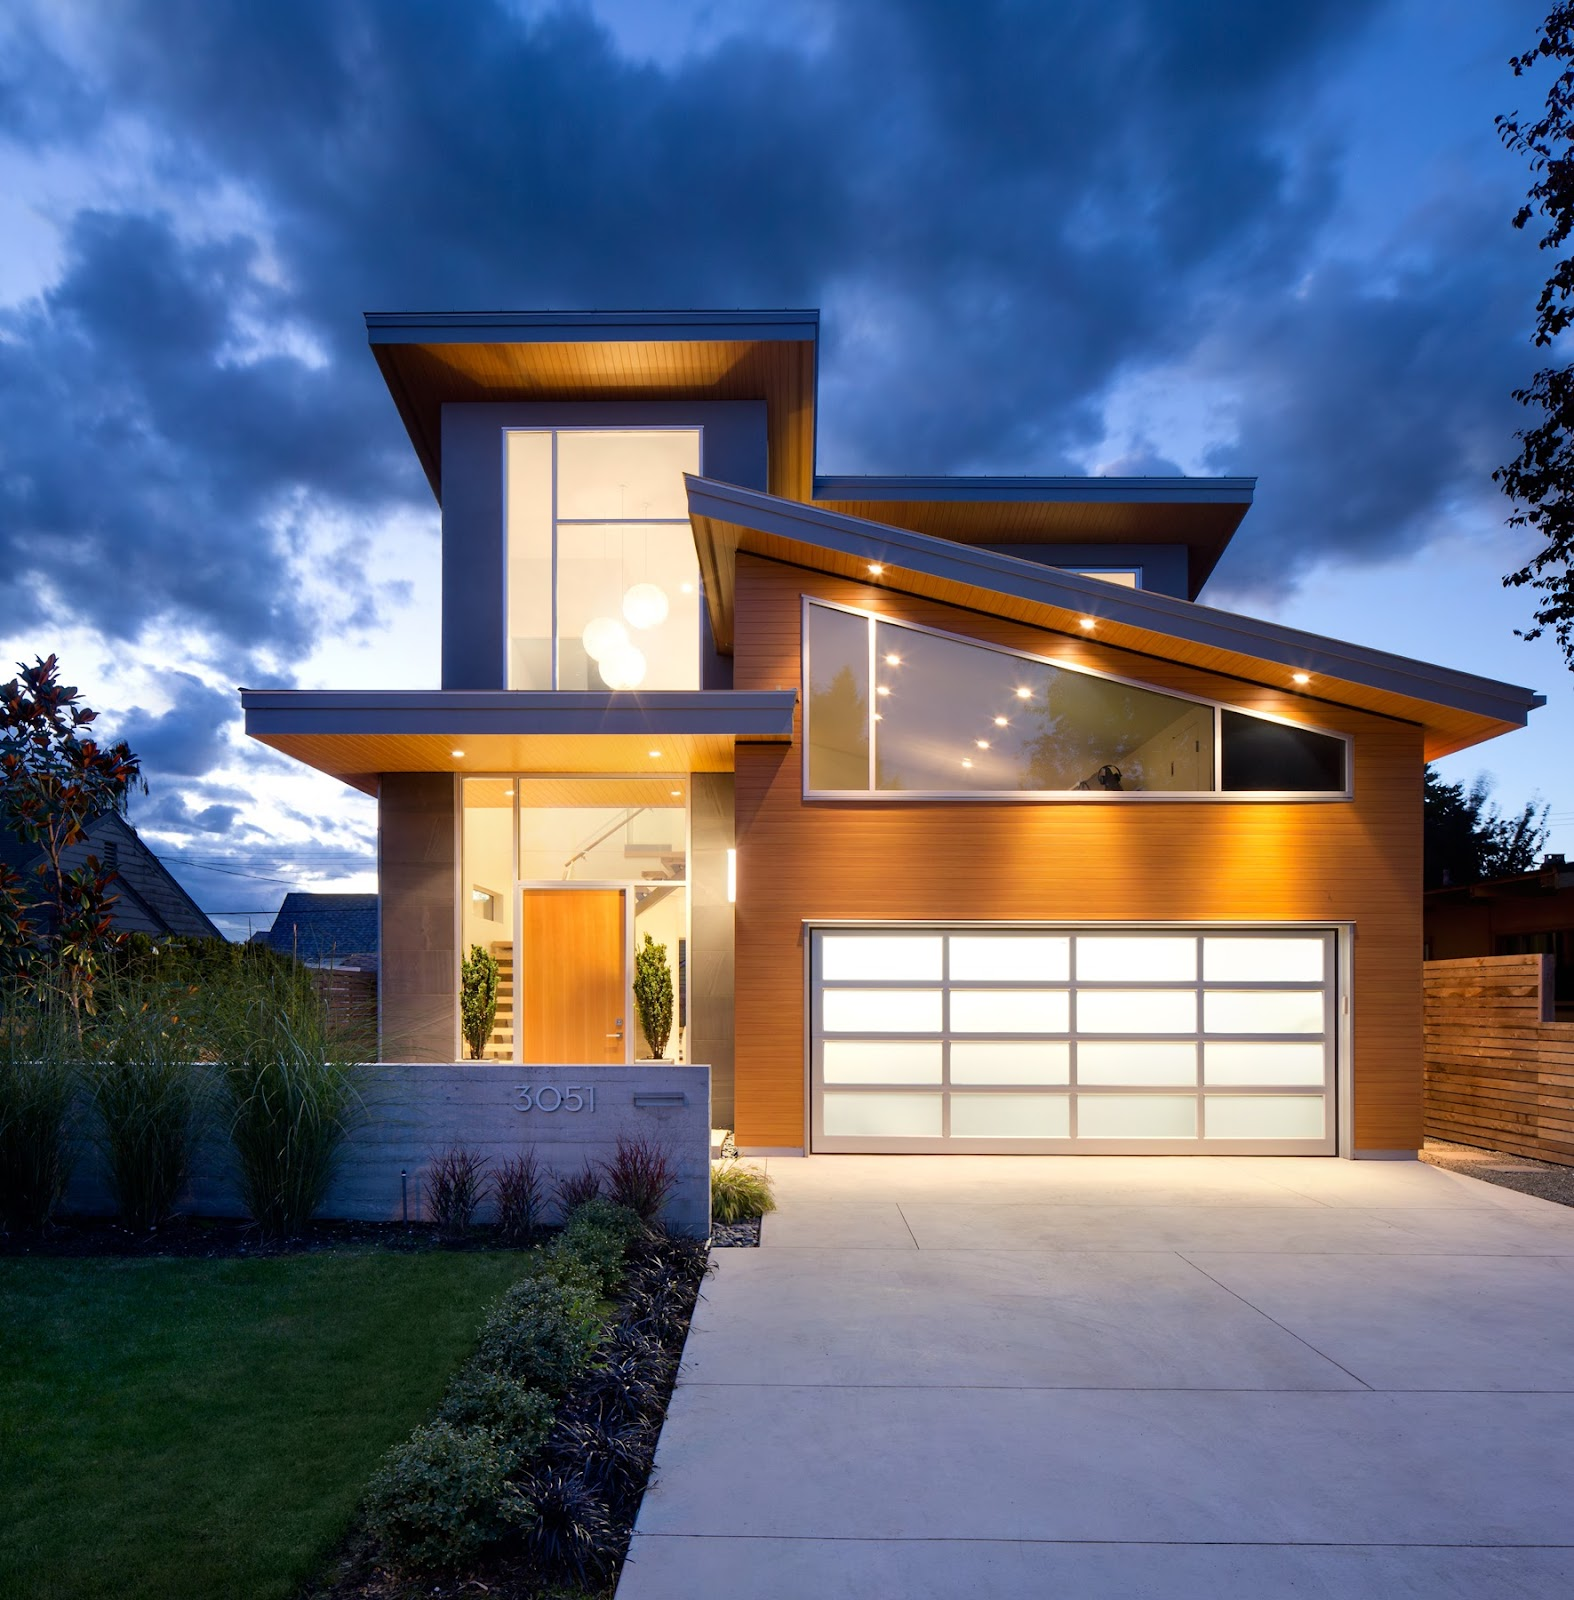 third annual vancouver and premier white rock modern home tour giveaway - Modern Homes Tour